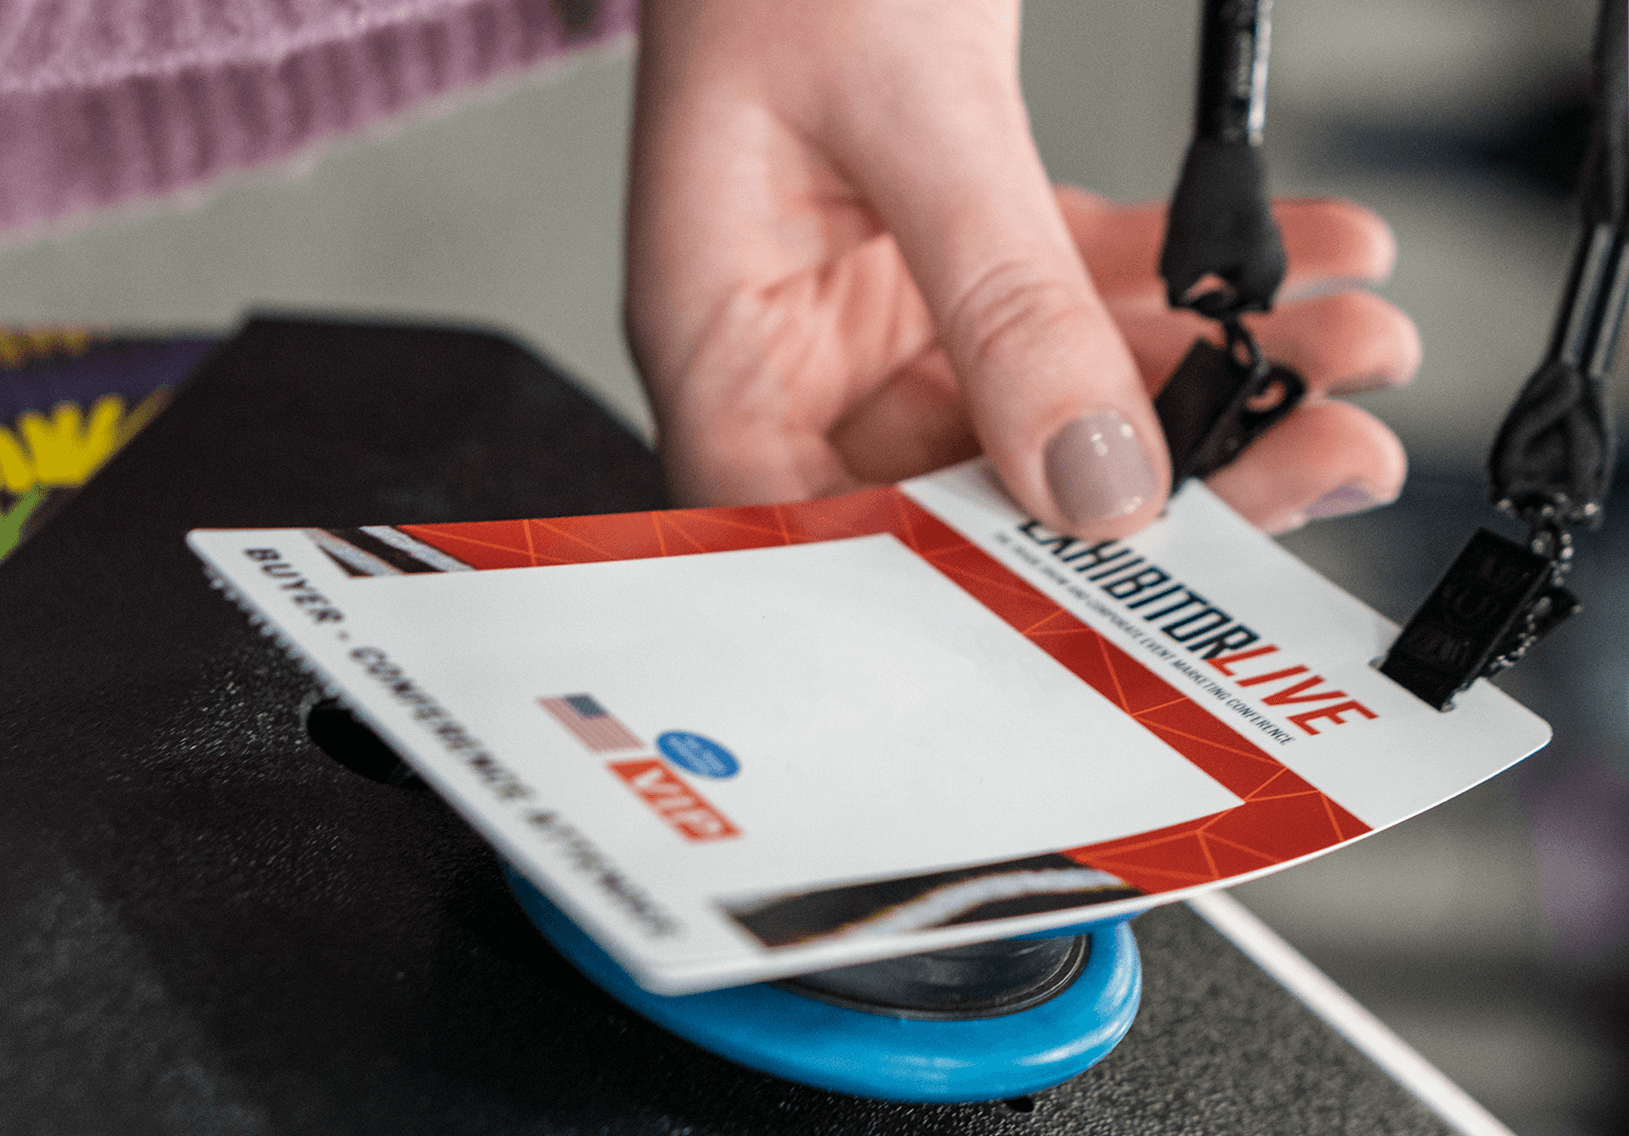 attendee using their event badge to access a session during a trade show